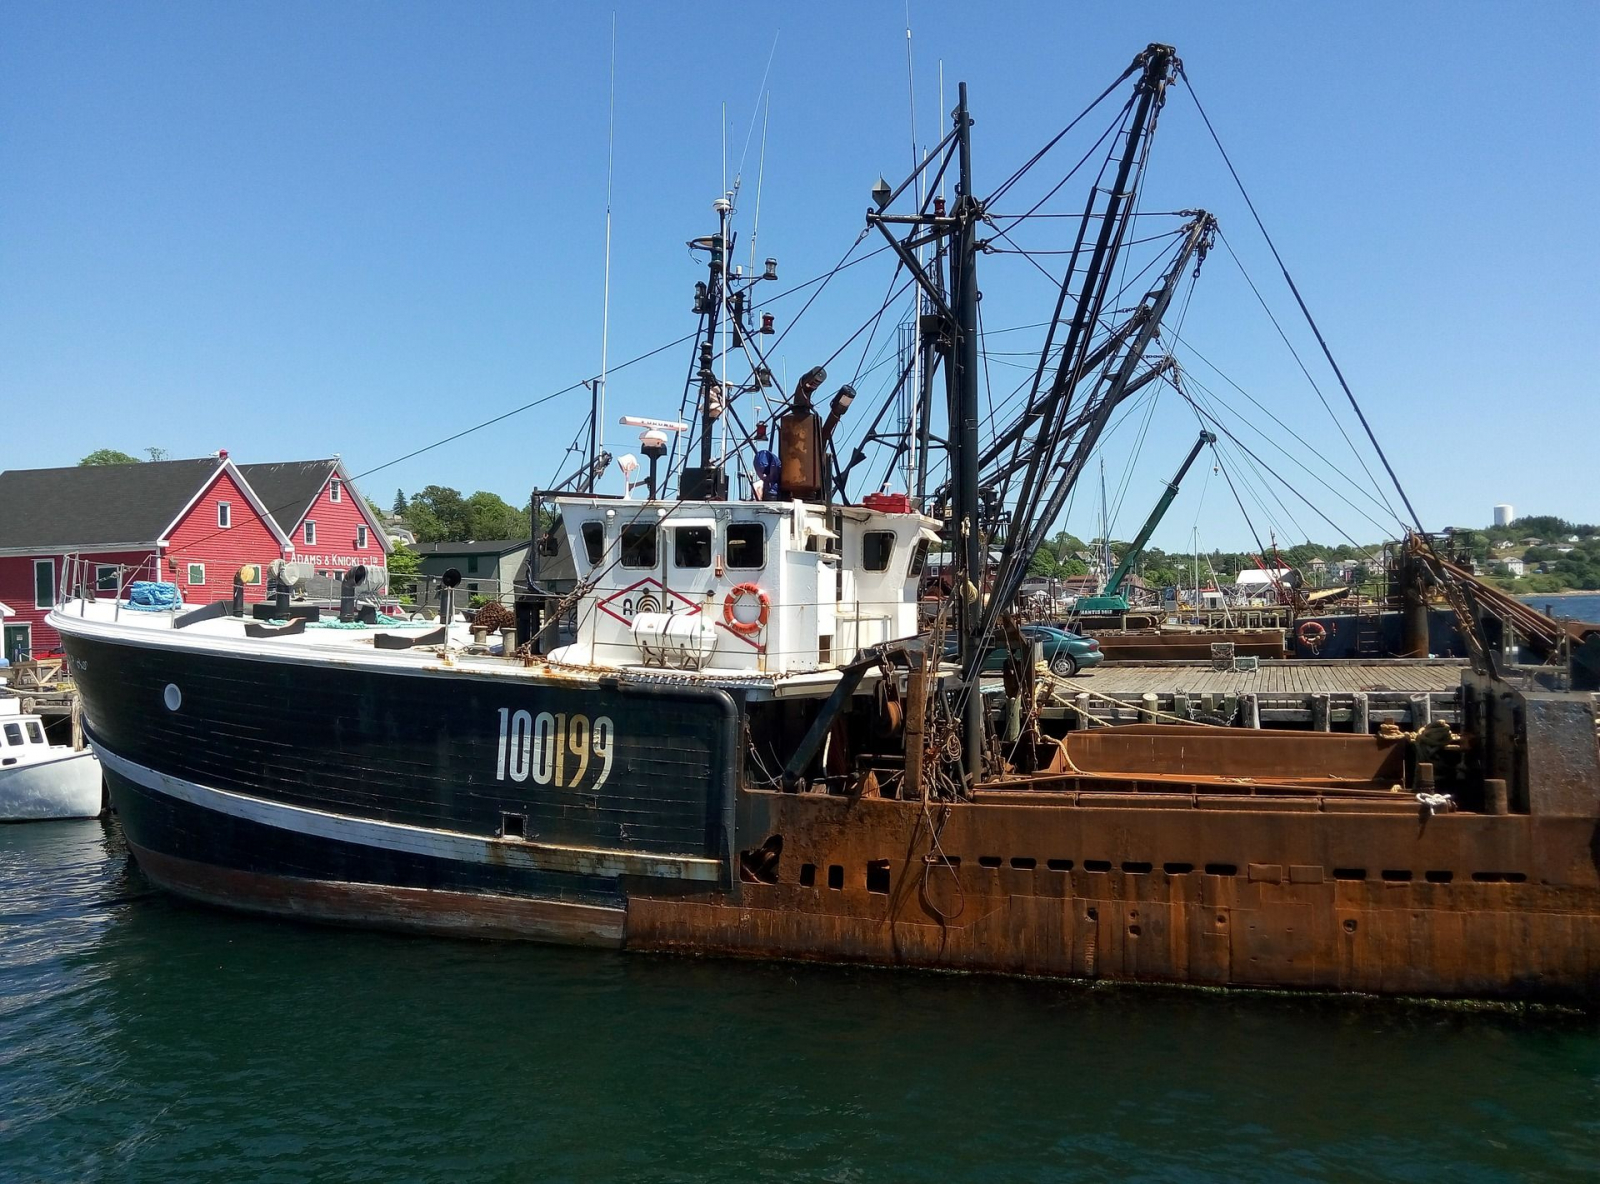 A fishing boat sits in Lunenburg's harbour. The industry is still an important player in Lunenburg's economic stability. Photo from Creative Commons